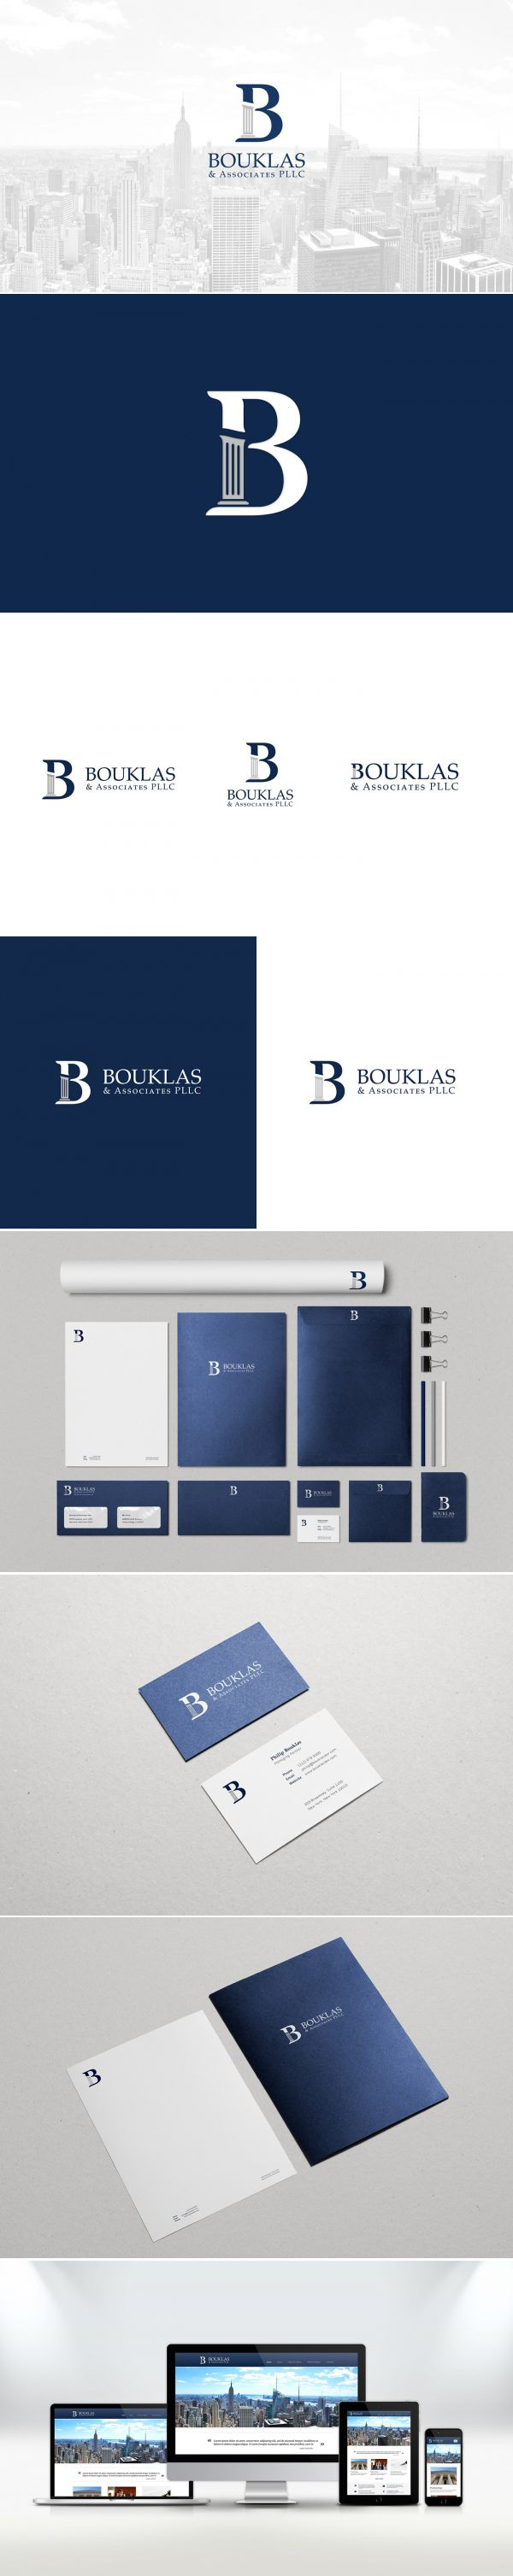 Bouklas & Associates Logo and Identity